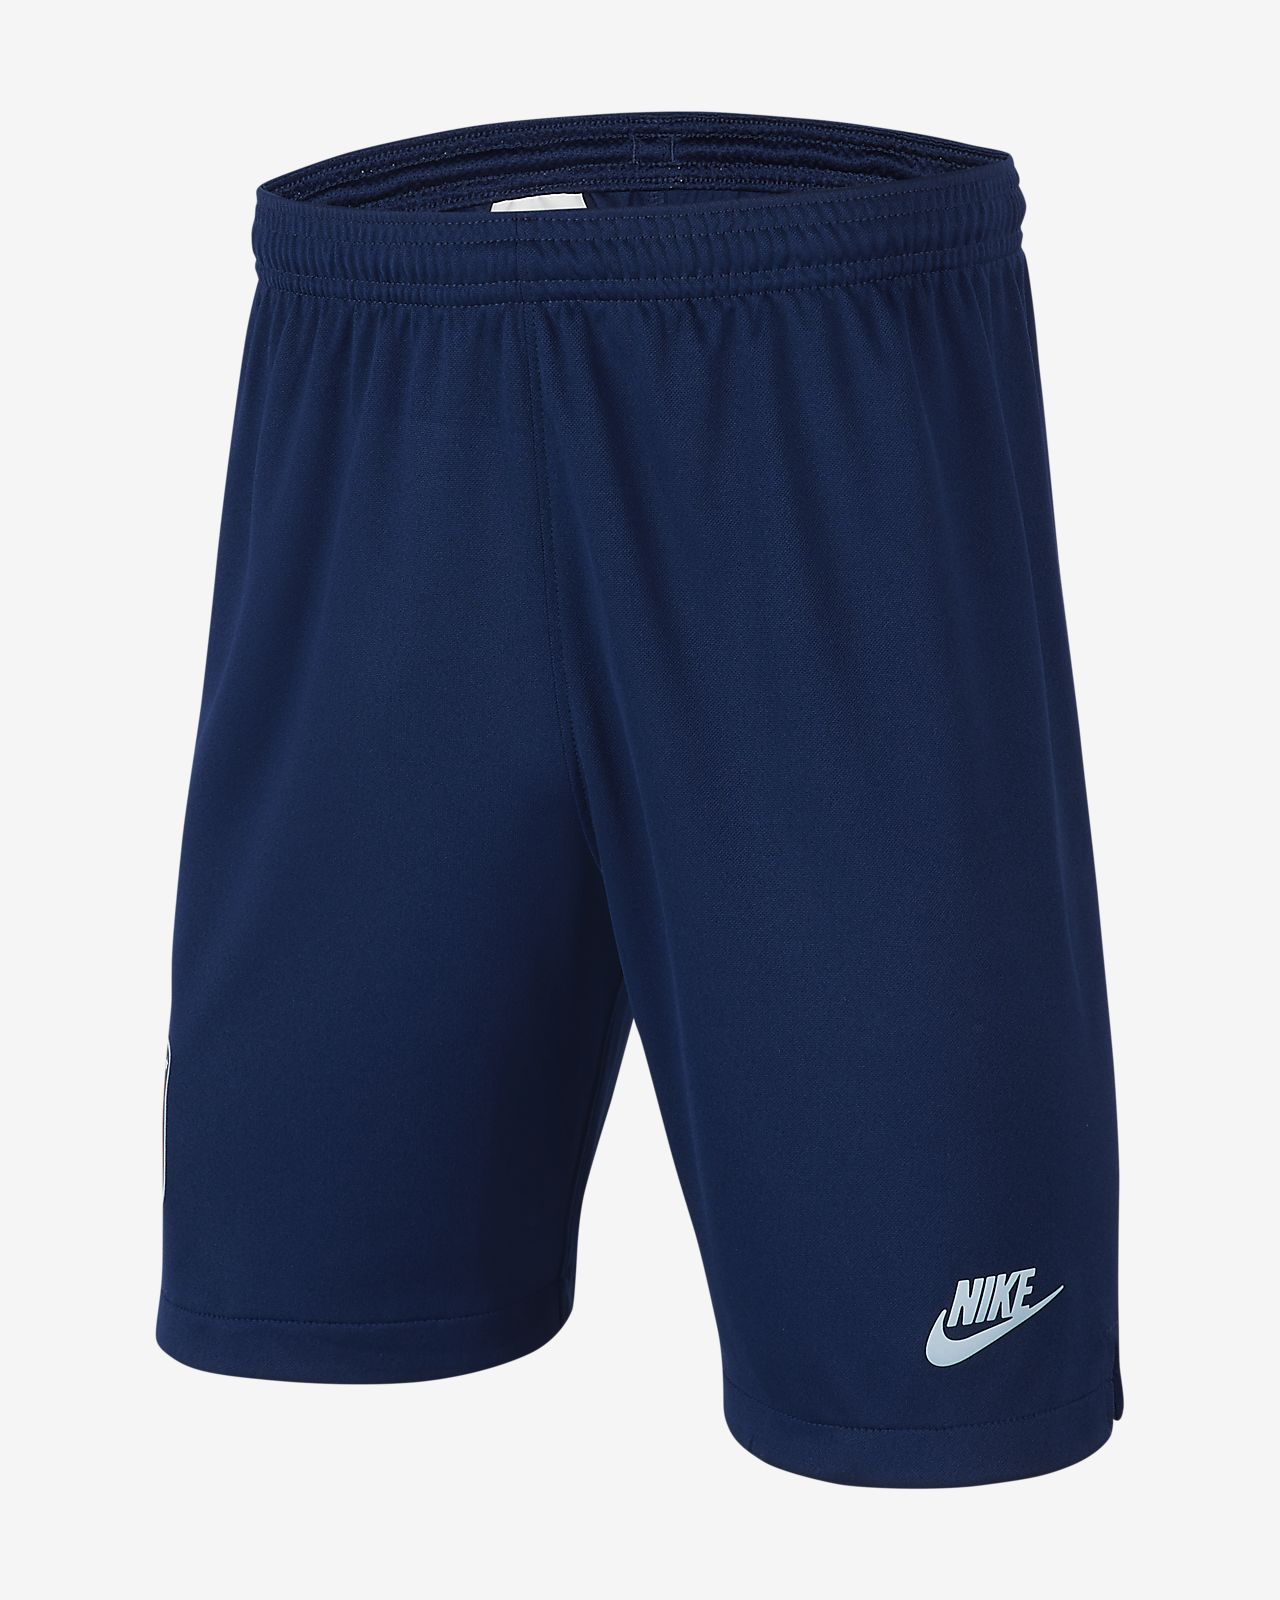 Atlético de Madrid 2019/20 Stadium Third Older Kids' Football Shorts